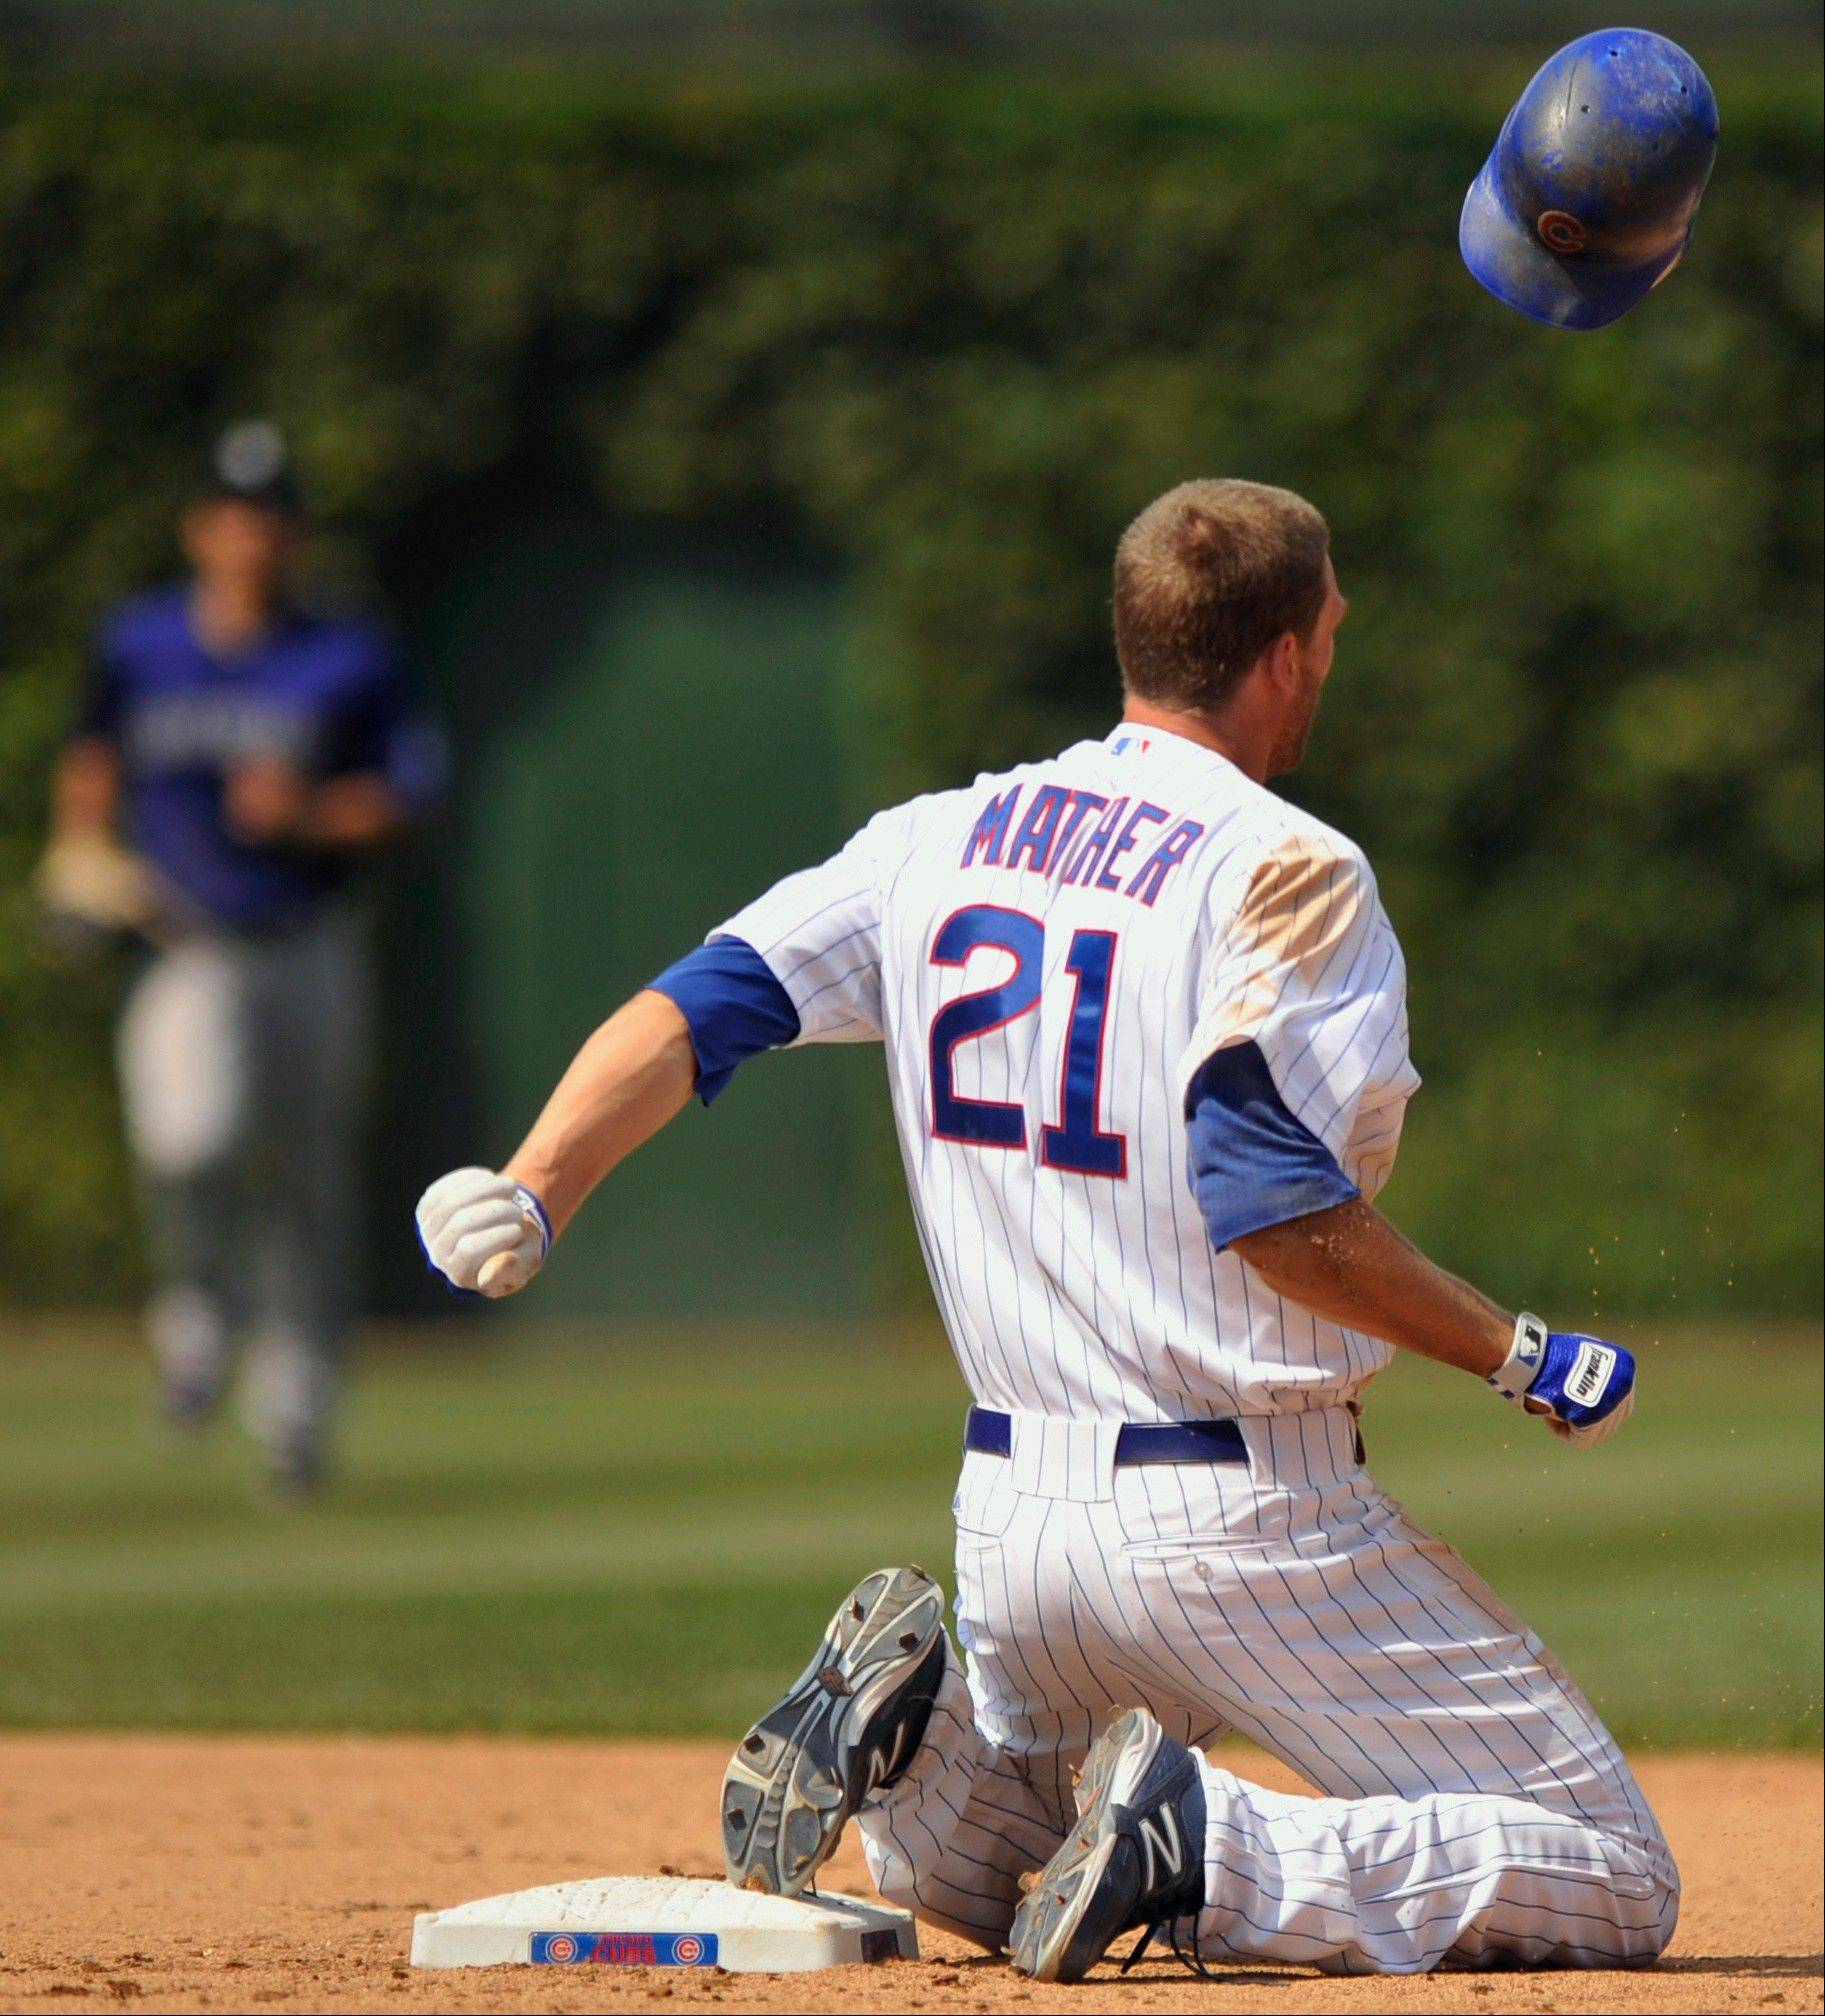 The Cubs' Joe Mather throws his helmet after being caught stealing at second base in the seventh inning Saturday at Wrigley Field, a play that manager Dale Sveum said proved extremely costly.